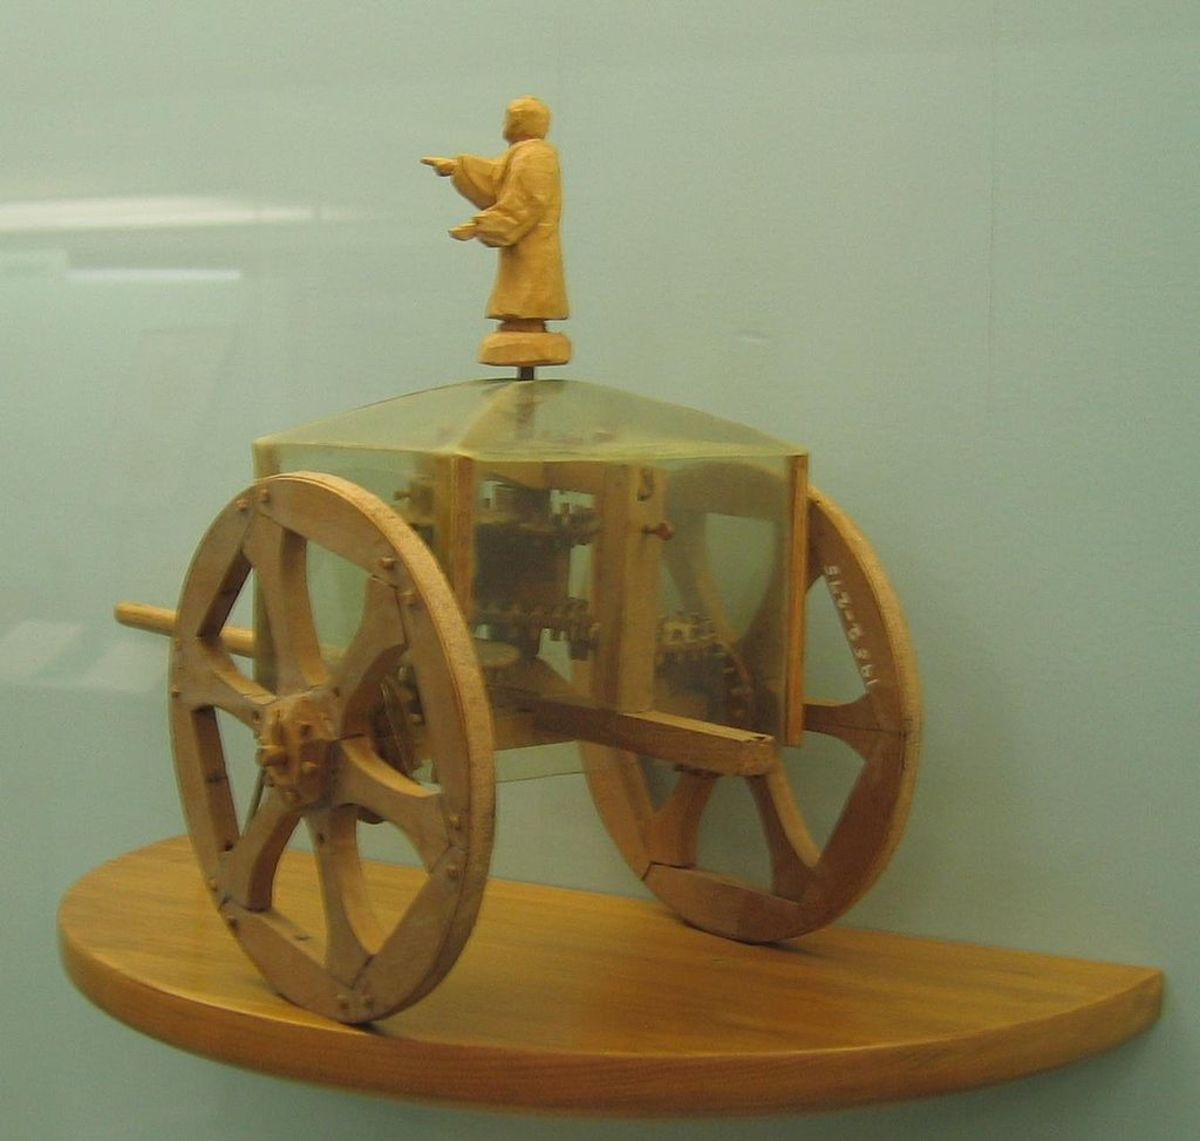 Model of a Zhi Nan Che displayed at the Science Museum in London.